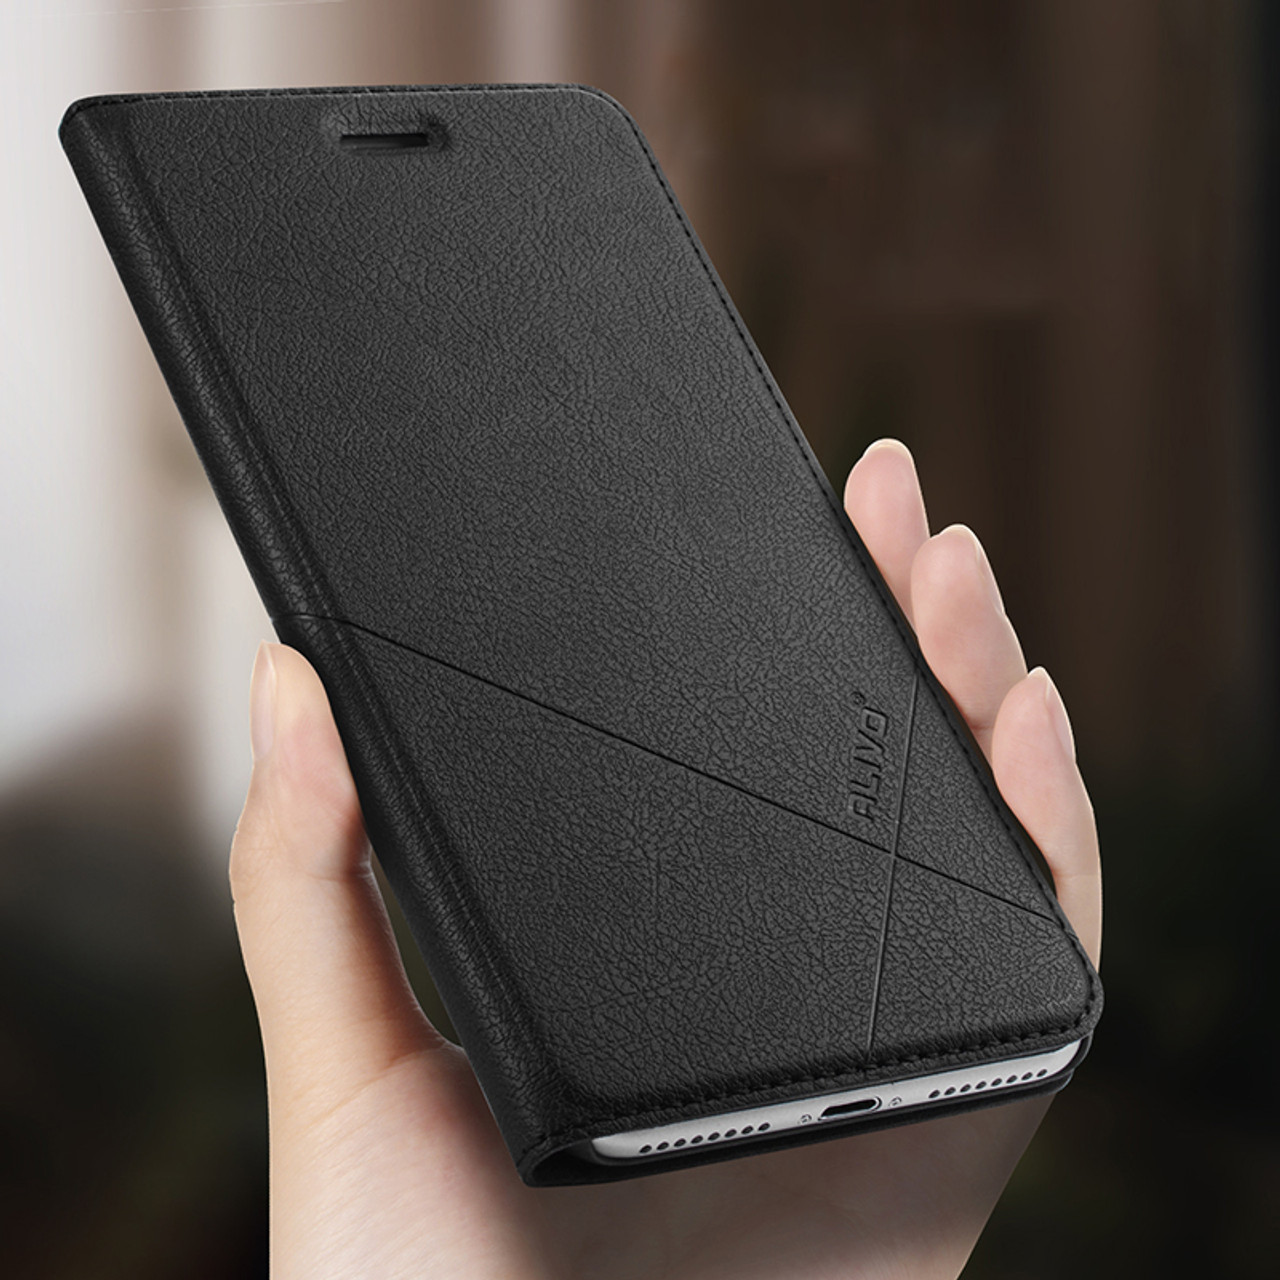 reputable site 3ead2 8466a ALIVO For iPhone 8 8 Plus Case Luxury PU Leather Case for iPhone 7 7 Plus  iphone 6s 6 plus Stand Protective Flip Cover Coque